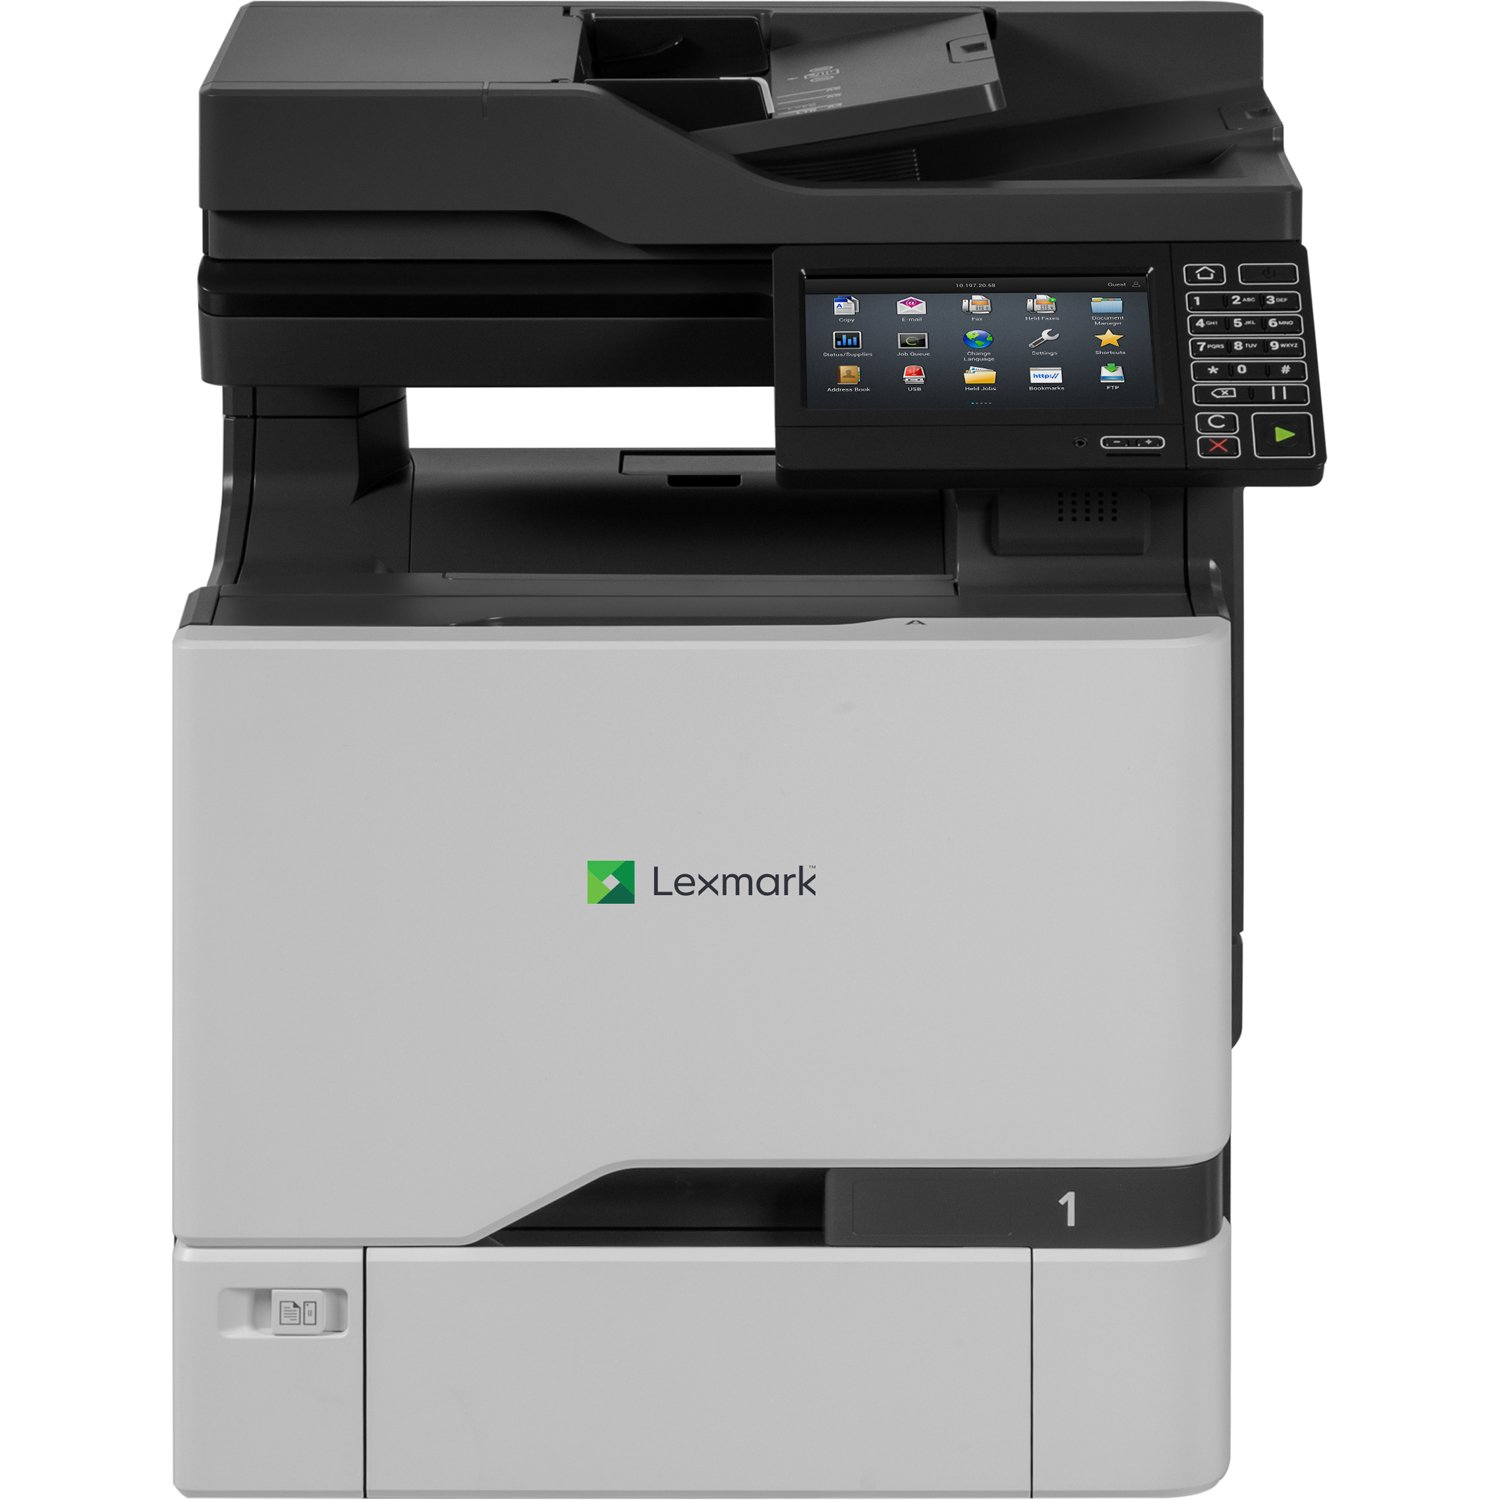 Lexmark CX725de Color All-In One Laser Printer, Network Ready, Duplex Printing and Professional Features